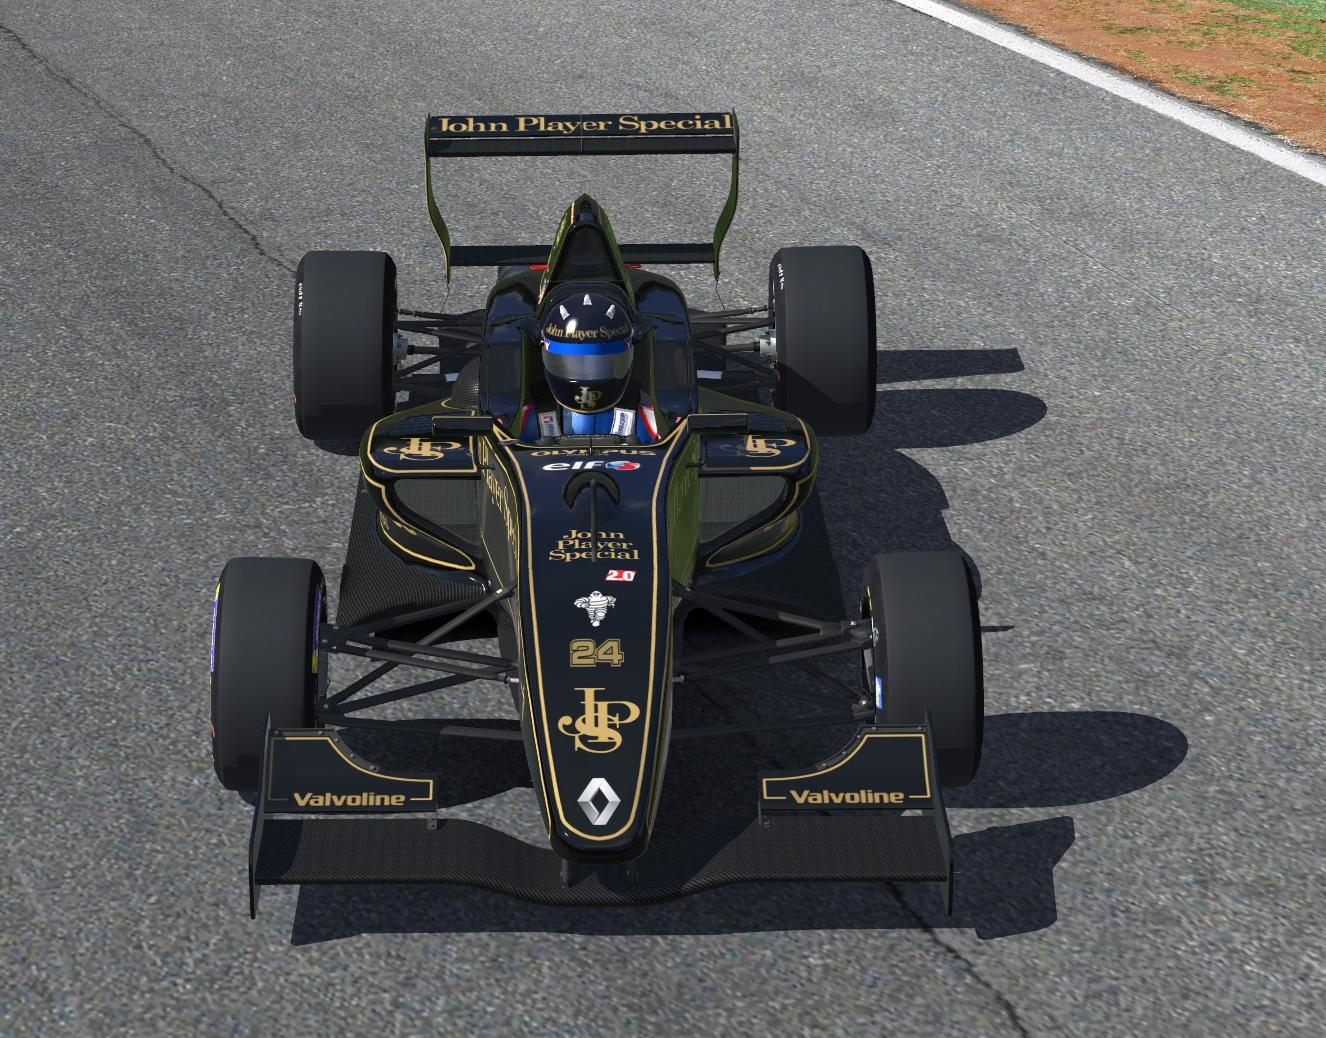 Preview of JPS Renault by Don Craig